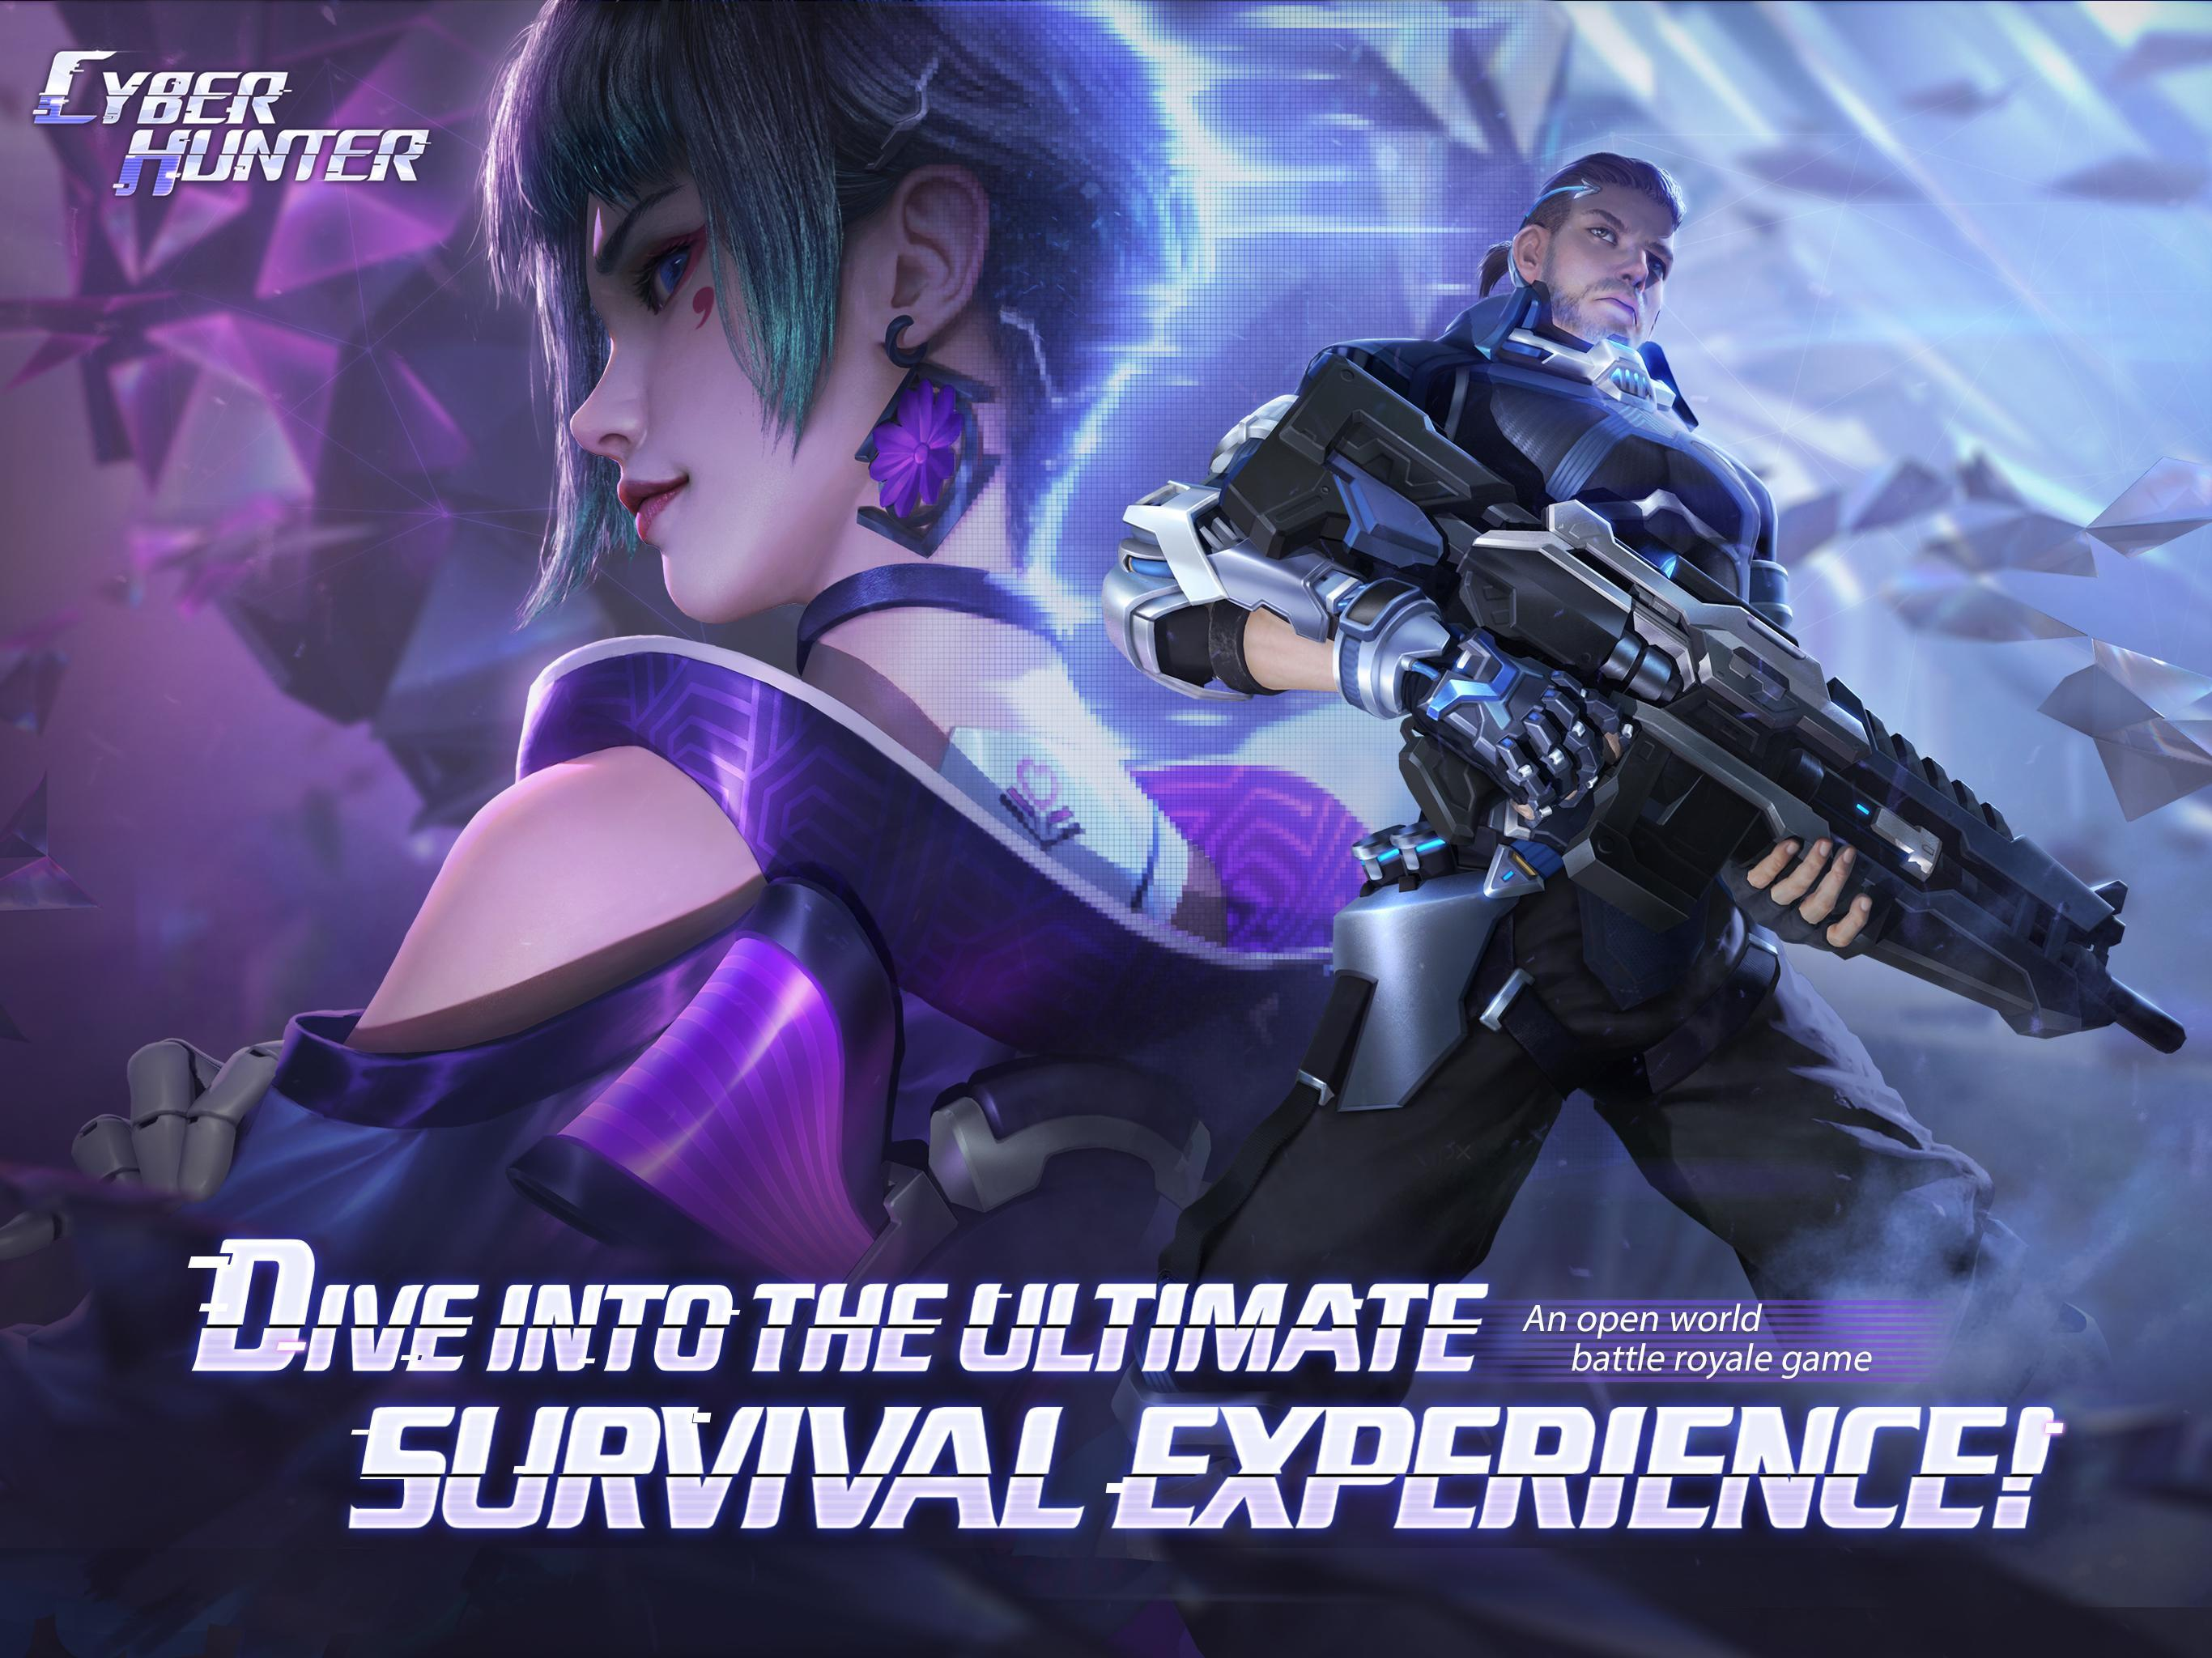 cyber hunter_Cyber Hunter for Android - APK Download